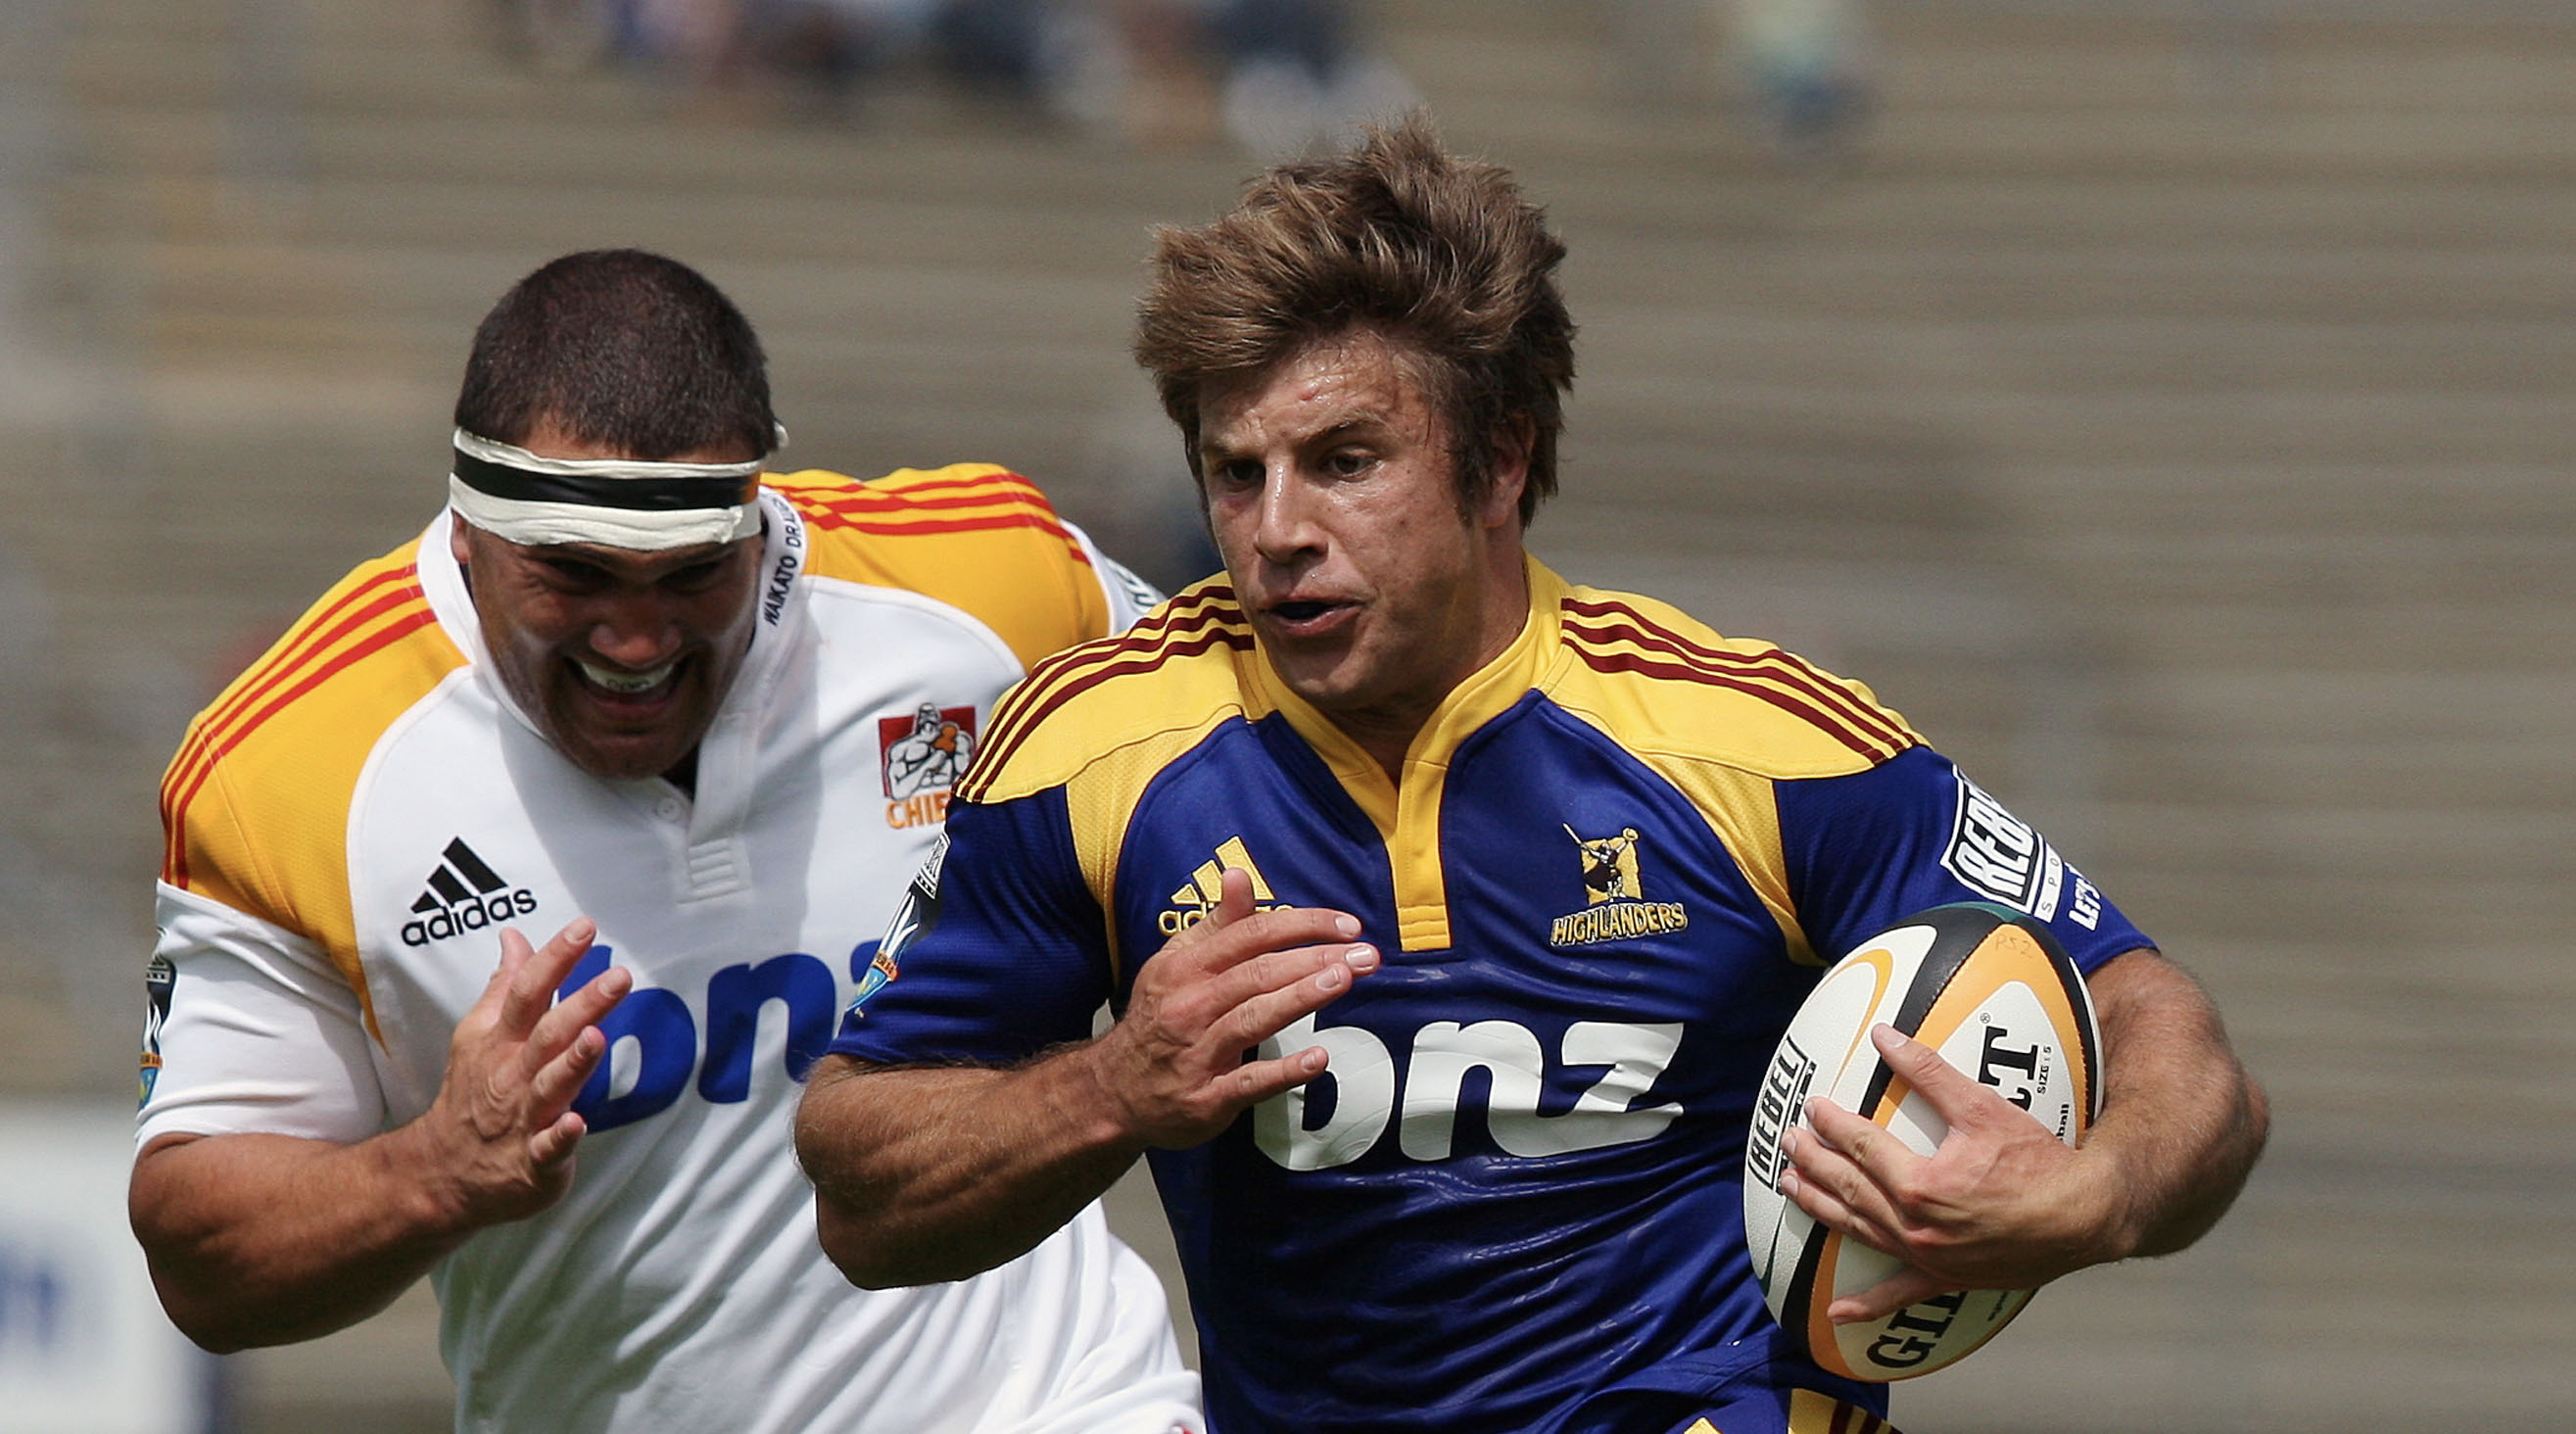 James Patterson, Former Super Rugby Player and USA Eagle takes over as Head Coach of the Kansas City Blues